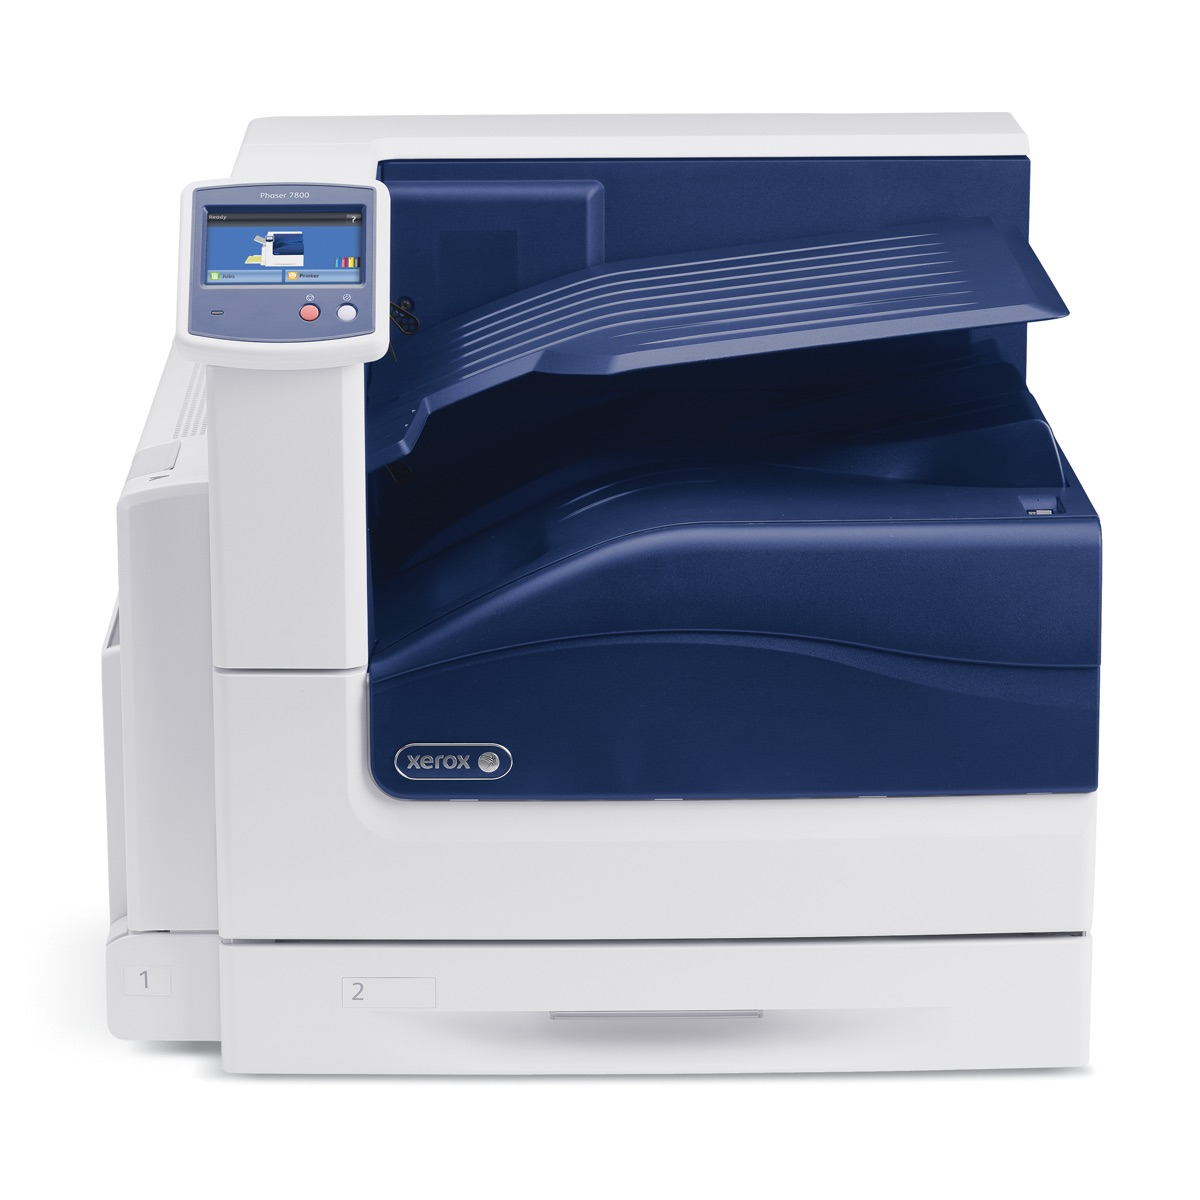 Xerox Printers:  The Xerox Phaser 7800 Series Printer